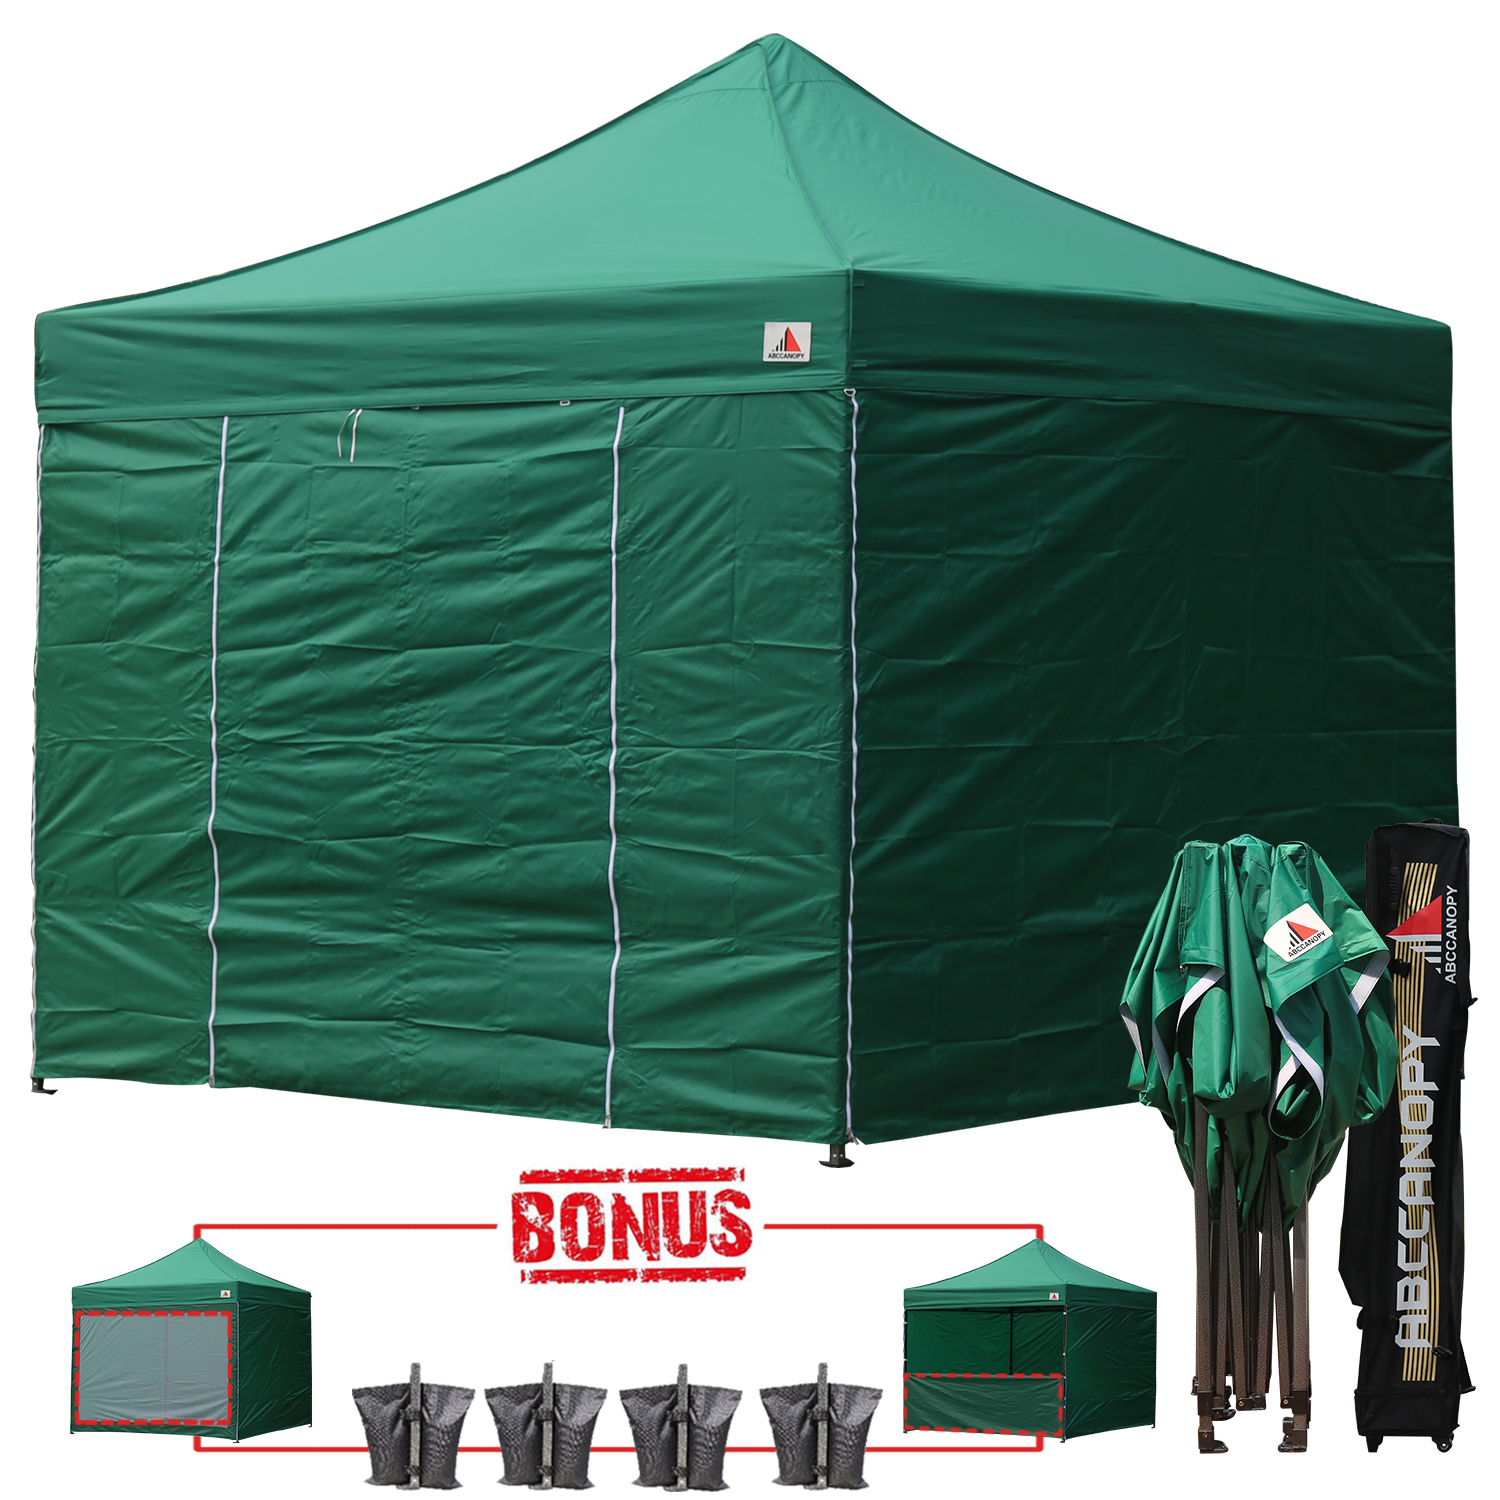 Green Color Canopies : Forest green m pop up canopy folding gazebo w